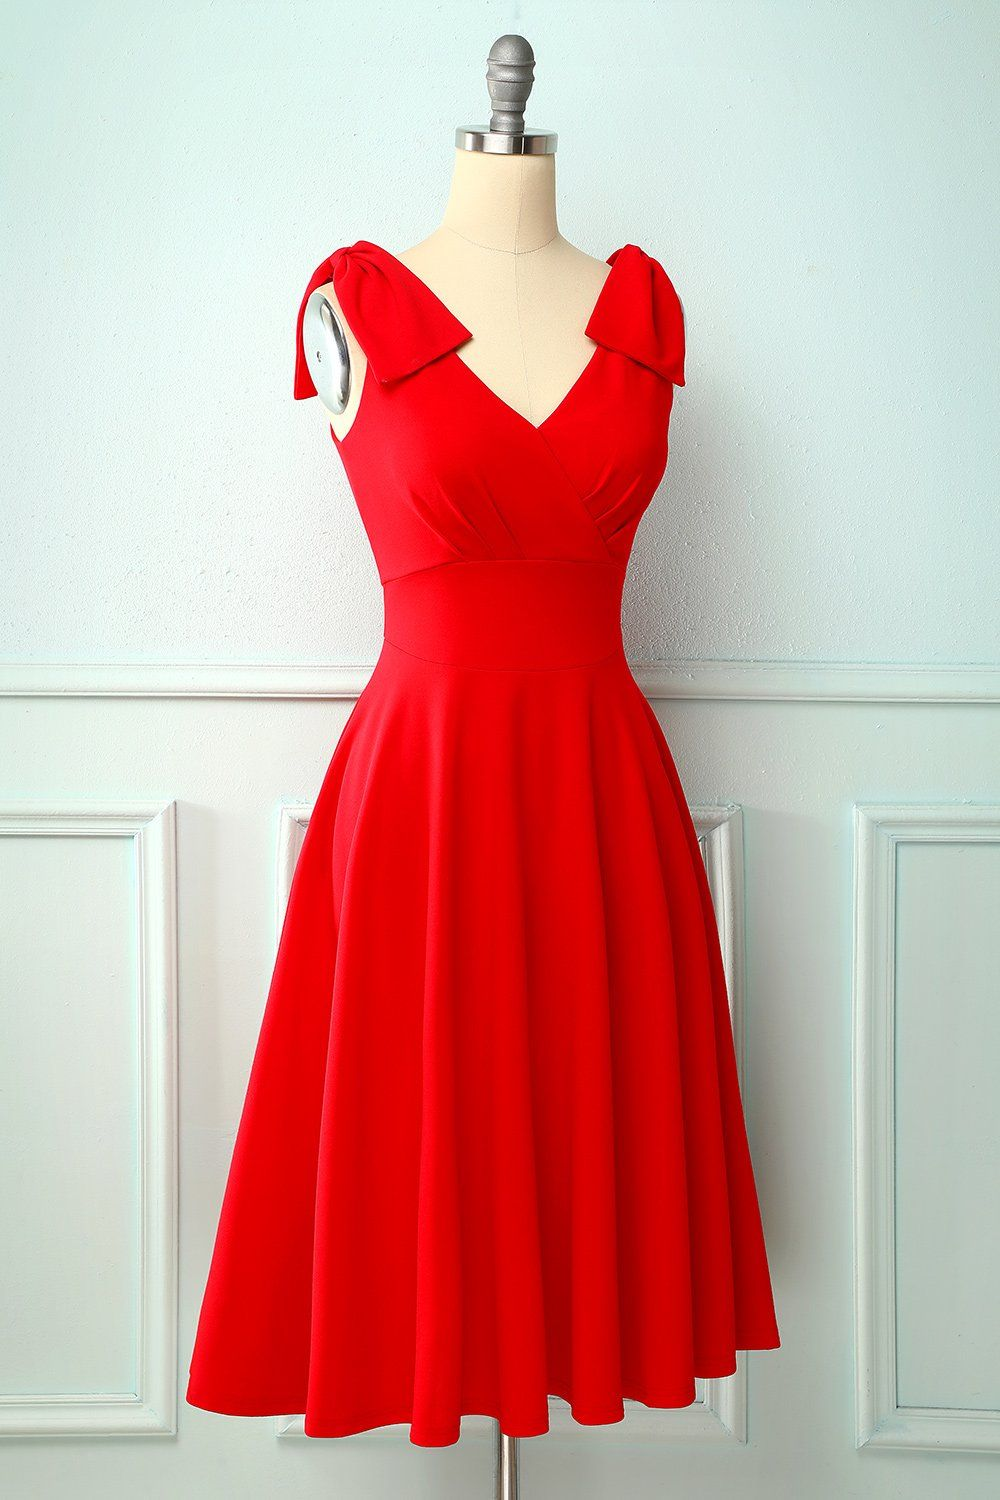 Vintage Red Dress With Pockets Red Rockabilly Dress Classic Red Dress Red Dress Outfit [ 1500 x 1000 Pixel ]